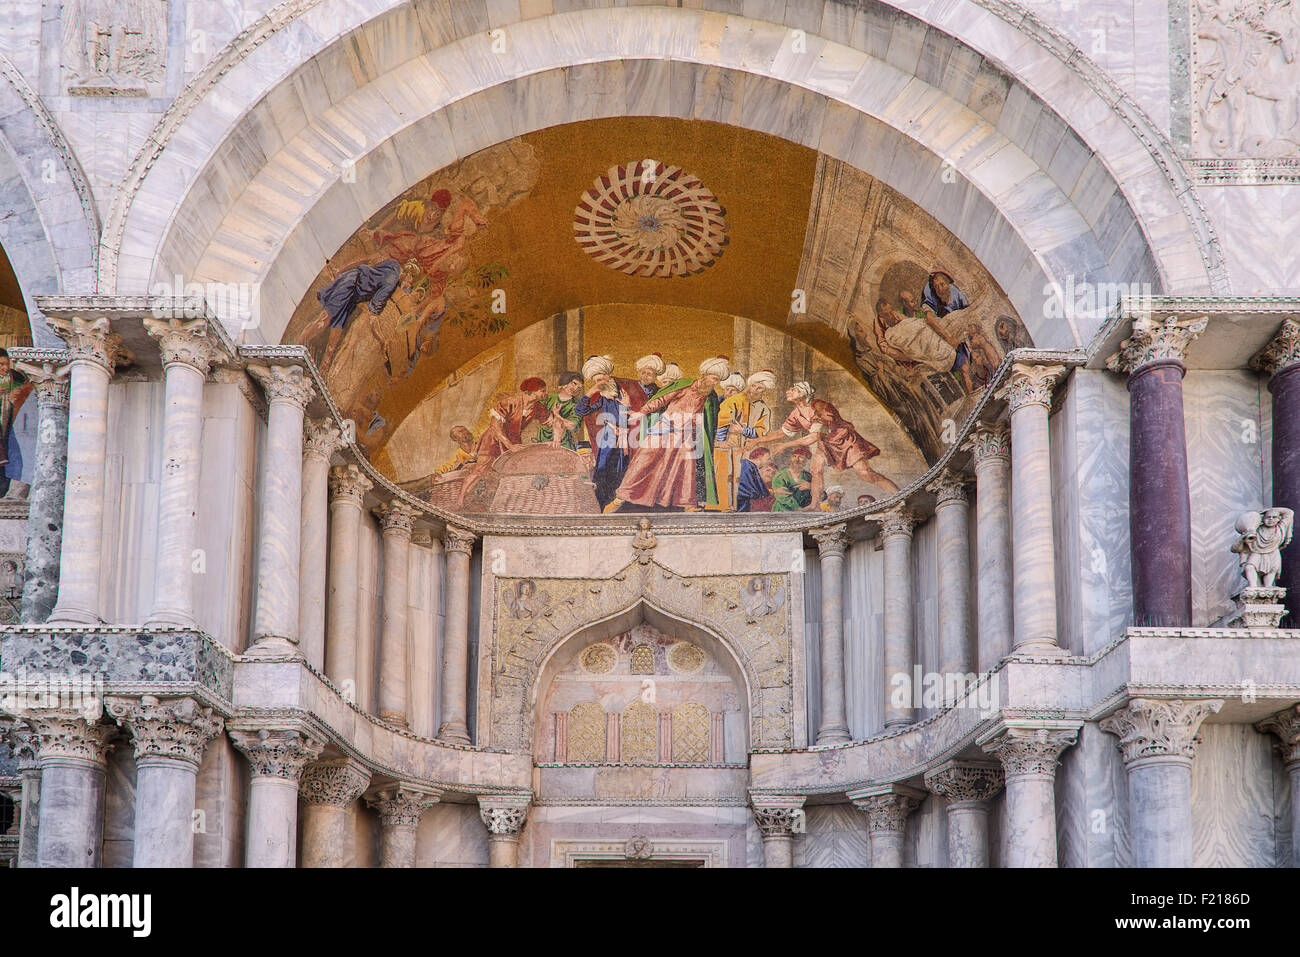 Italy, Venice, St Mark's Basilica, mosaic above a doorway depicting the recovery of St. Mark's body in Alexandria - Stock Image